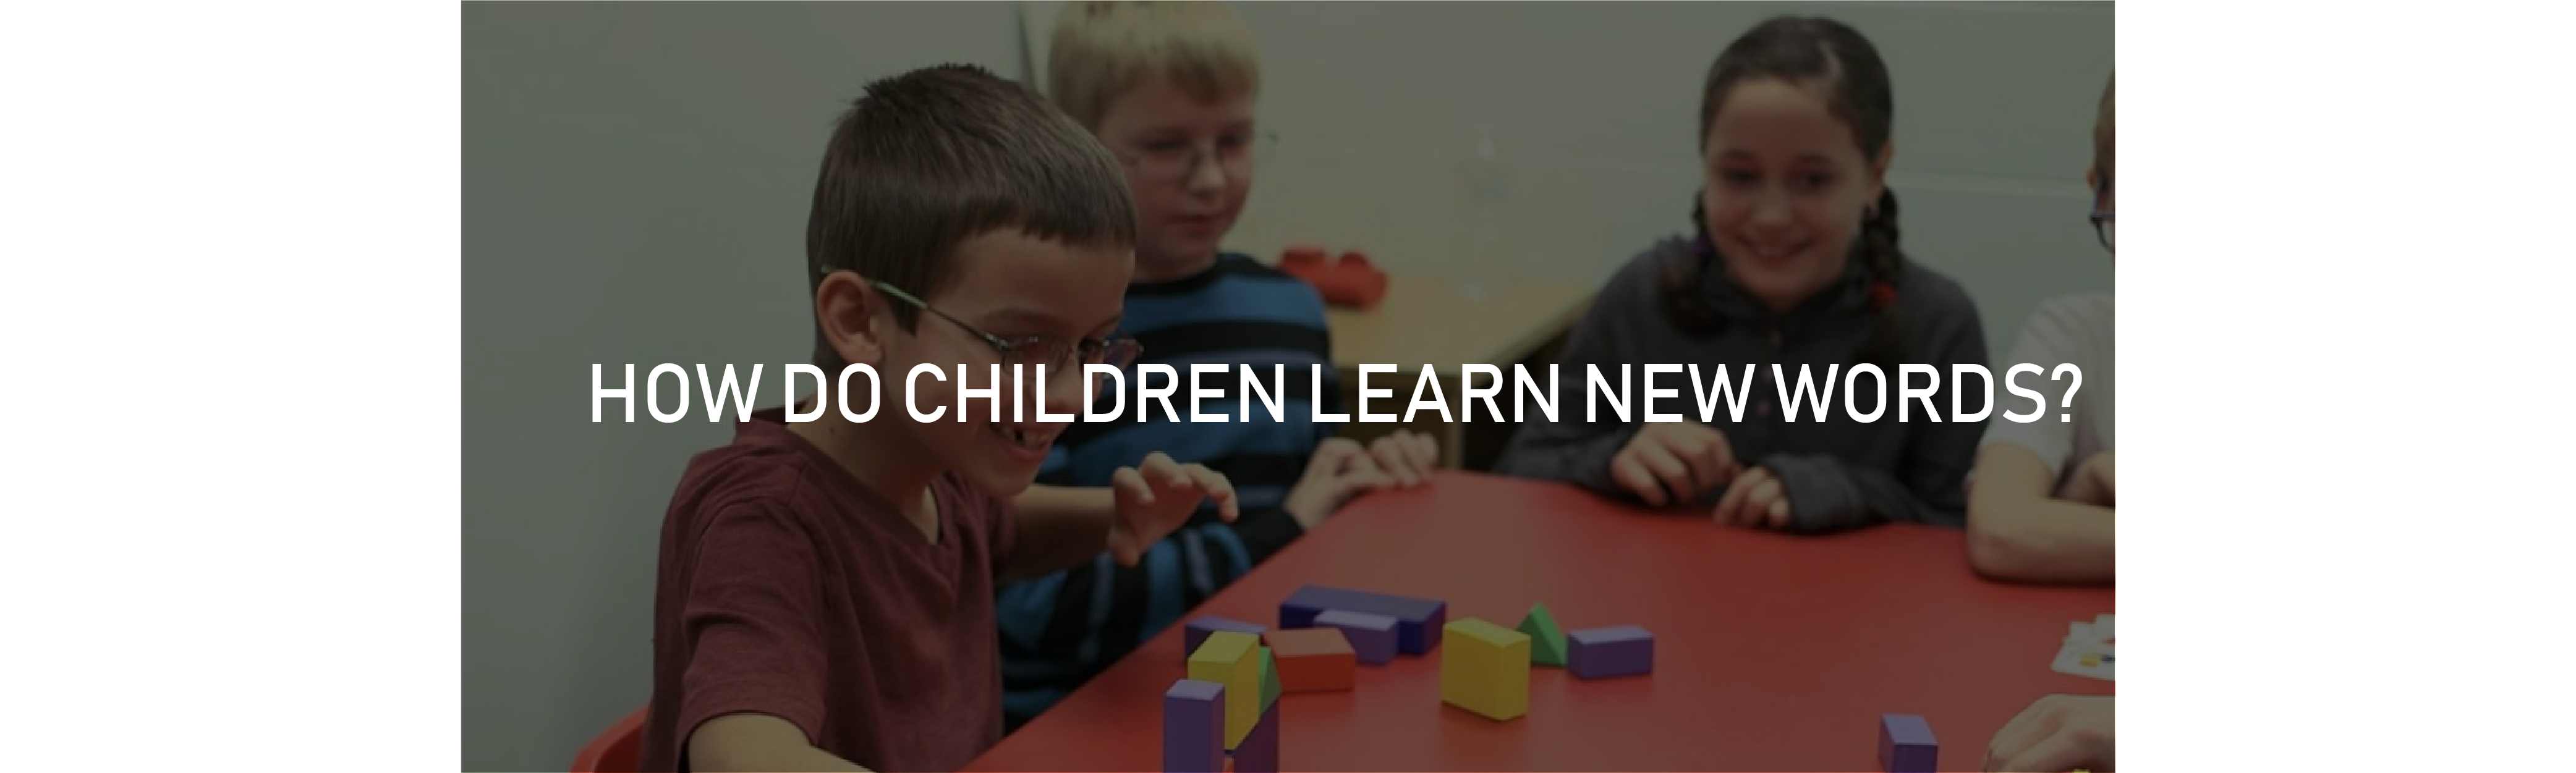 Word Learning and Child Learning